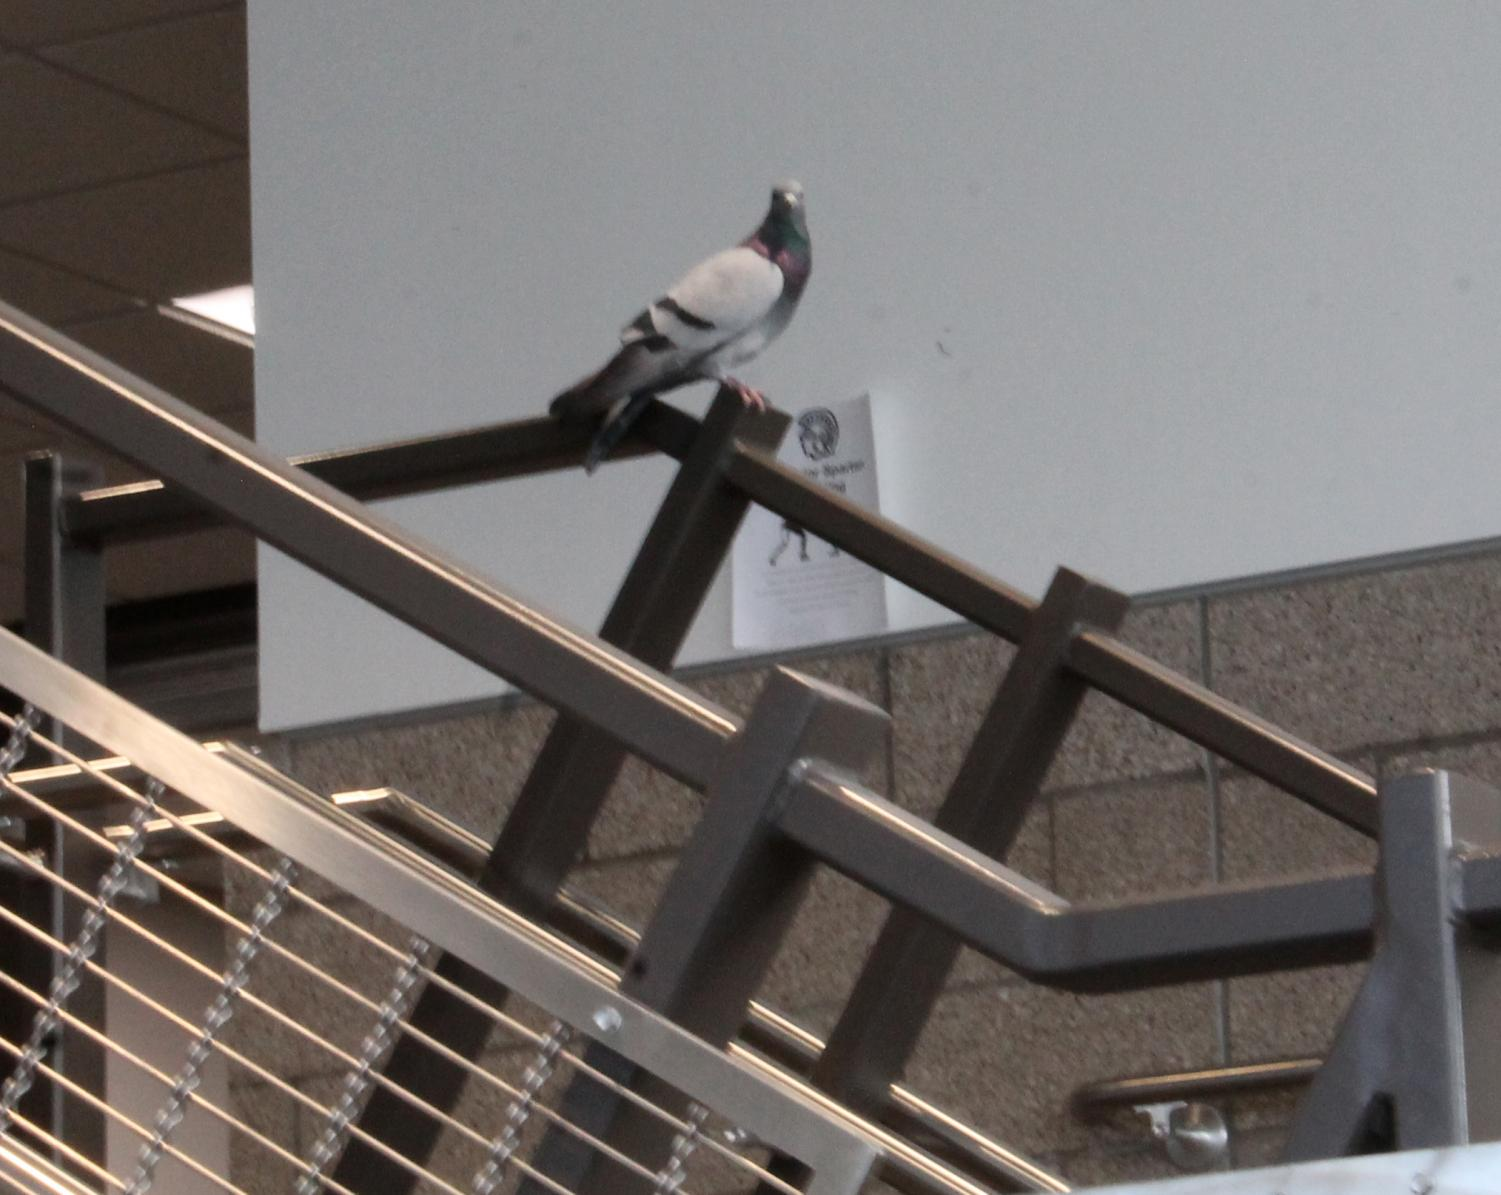 This pigeon was hanging out on the stairs going up to the third floor but did not properly check into the office on Nov. 12.